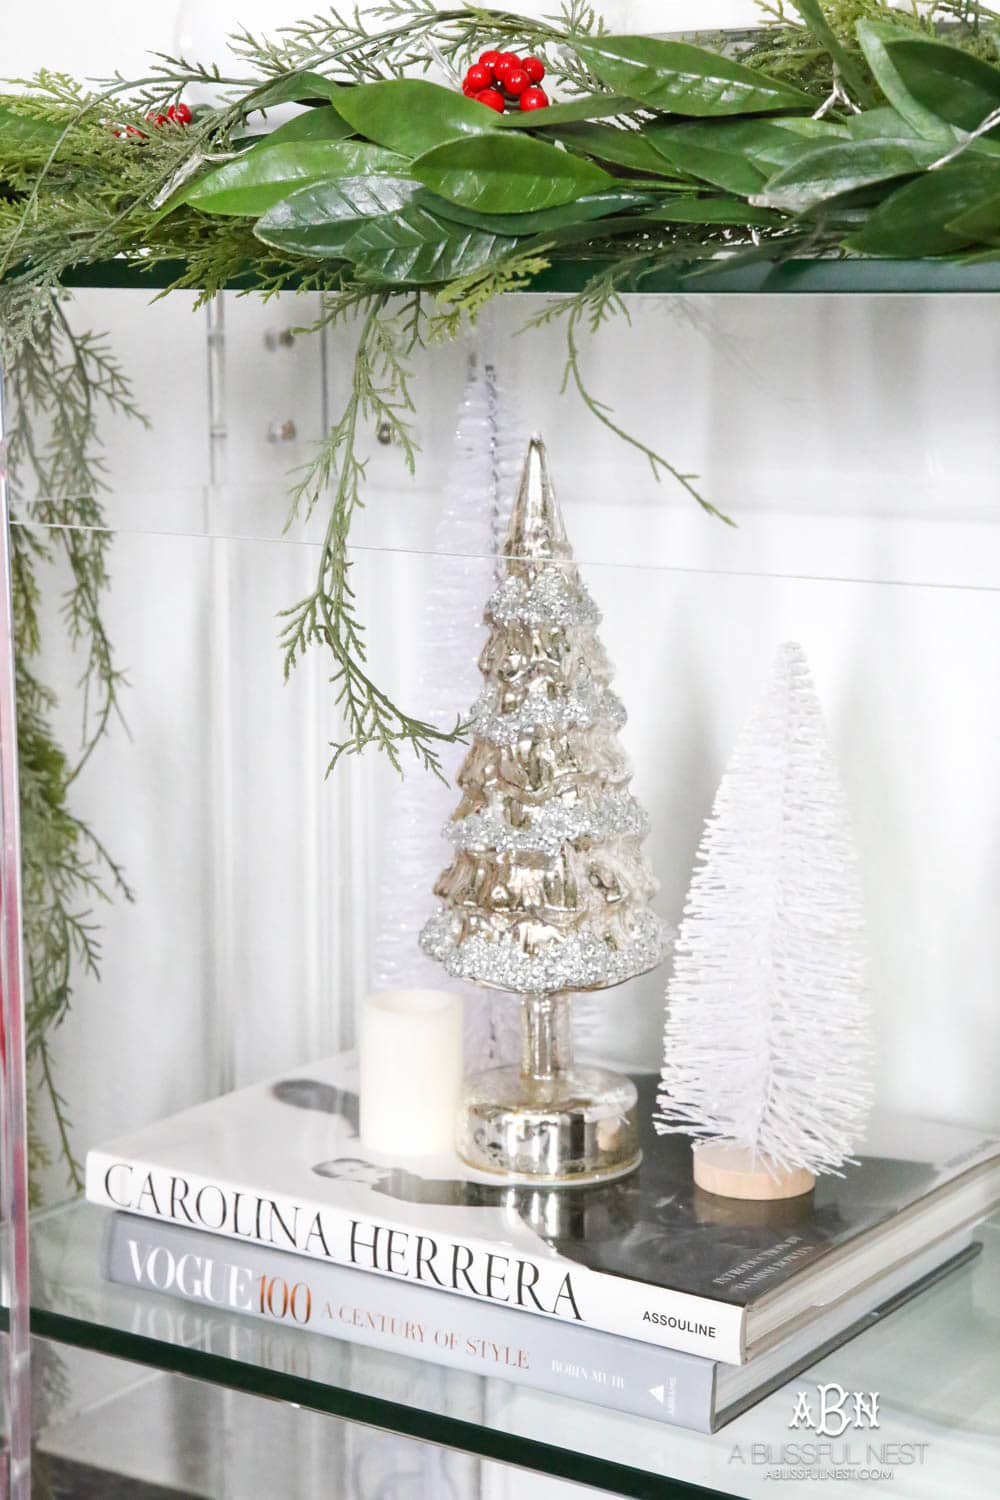 Create a display with your mini trees by clustering them on top of décor books and adding in candles. More ways to add in classic Christmas décor into your home on ablissfulnest.com. #christmasentryway #christmasentry #christmasentrydecor #christmasentrywayideas #christmashometour